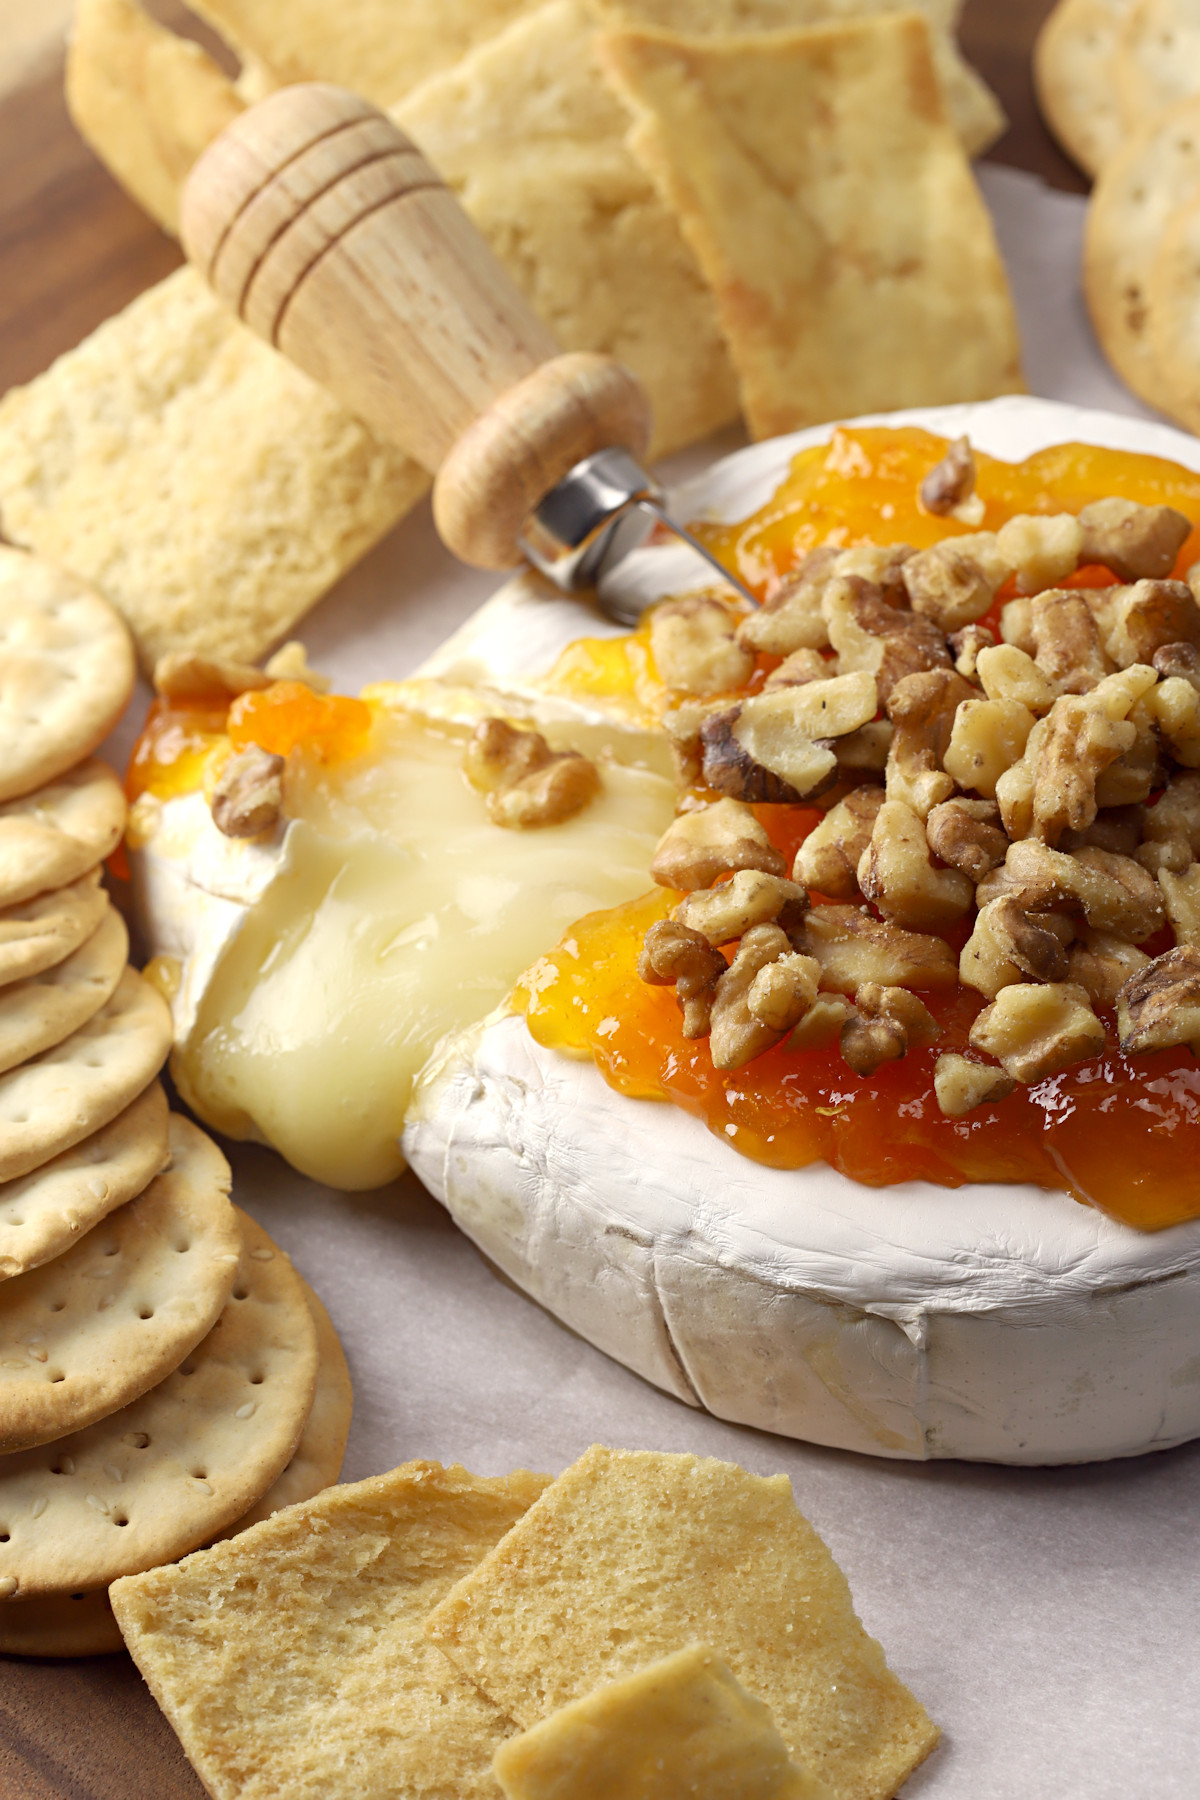 Baked brie sliced open to reveal melty center.